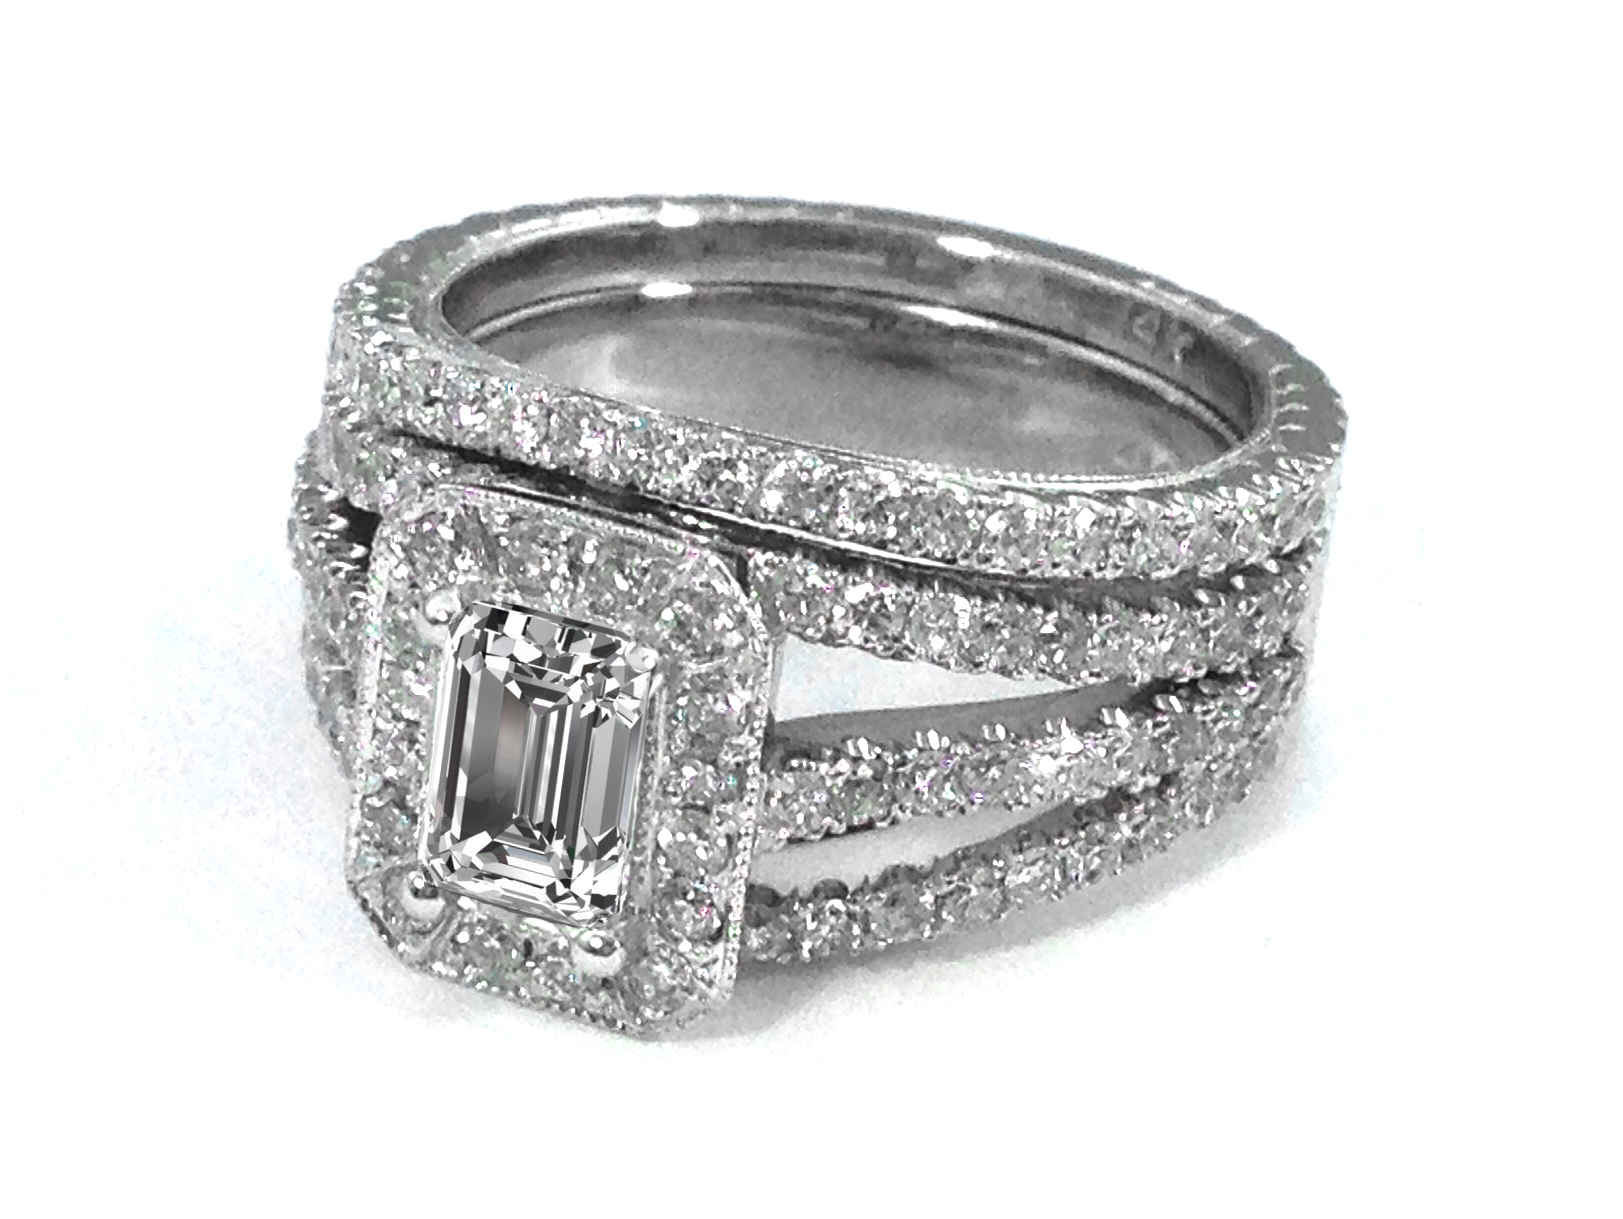 Trio Band Emerald Cut Diamond Engagement Ring & Matching Wedding Band in 14K White Gold